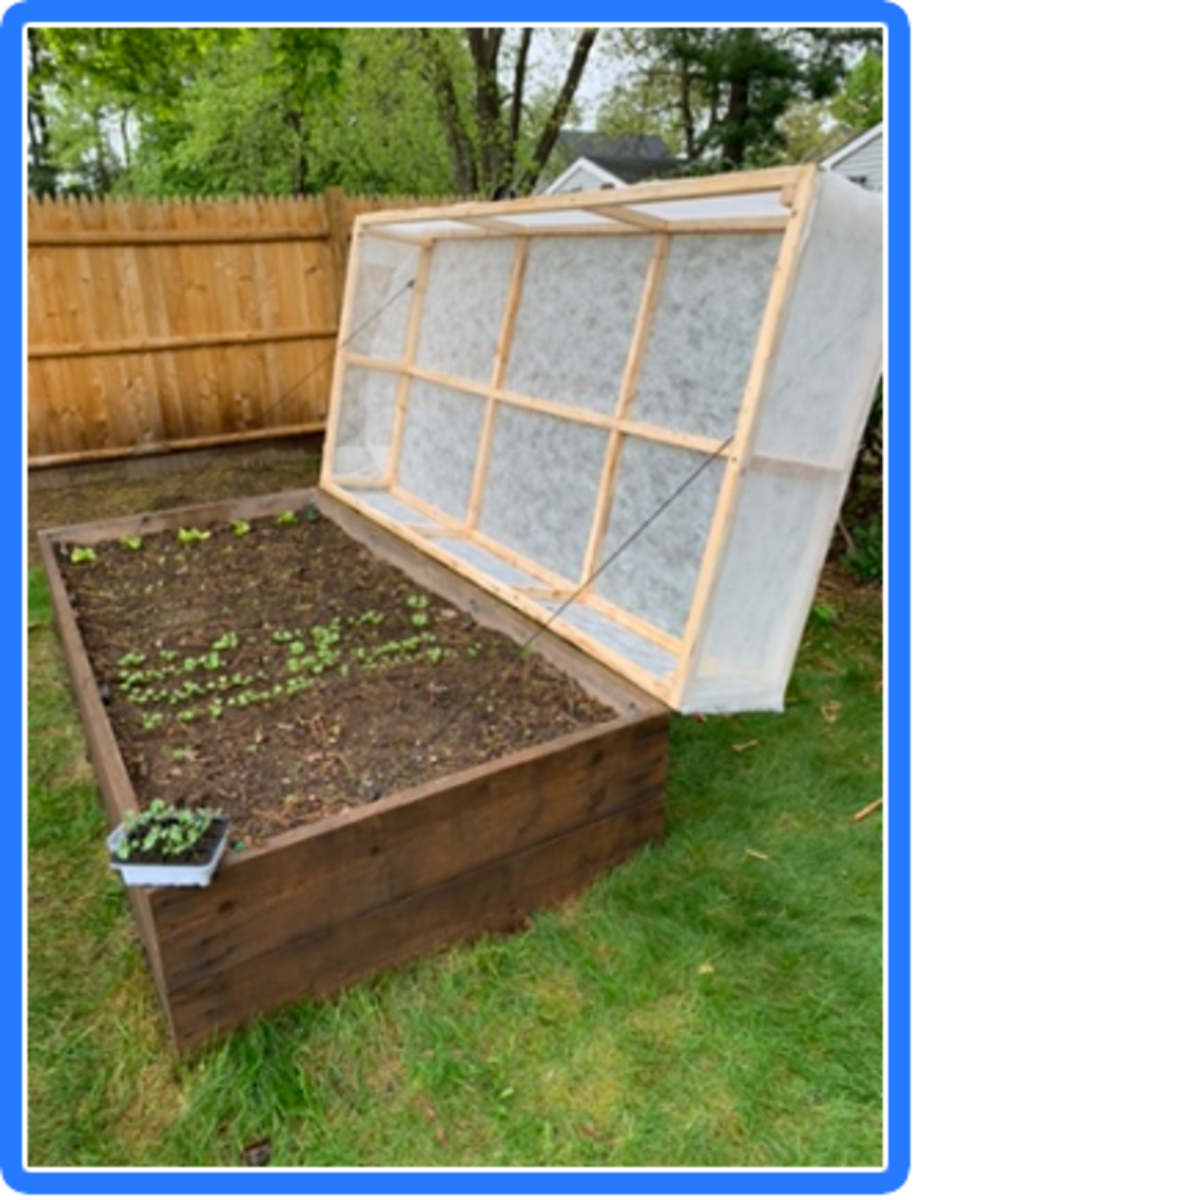 Wooden frame installed on raised bed with row cover attached.